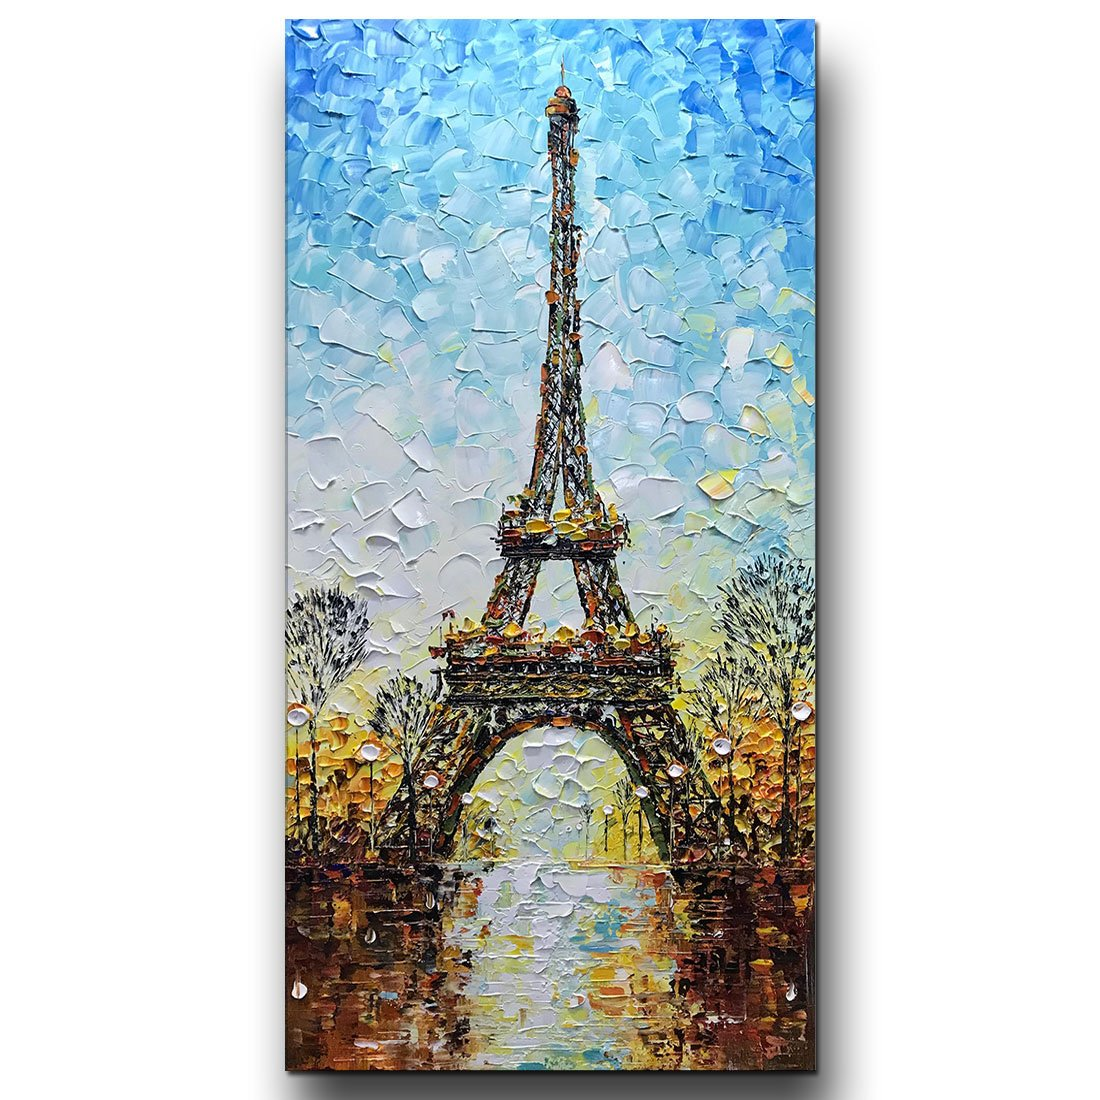 Asdam Art- Eiffel Tower 3D Paintings On Canvas Landscape Wall Art 100% Hand Painted Modern Large Artwork Vertical Paintings(24x48in)